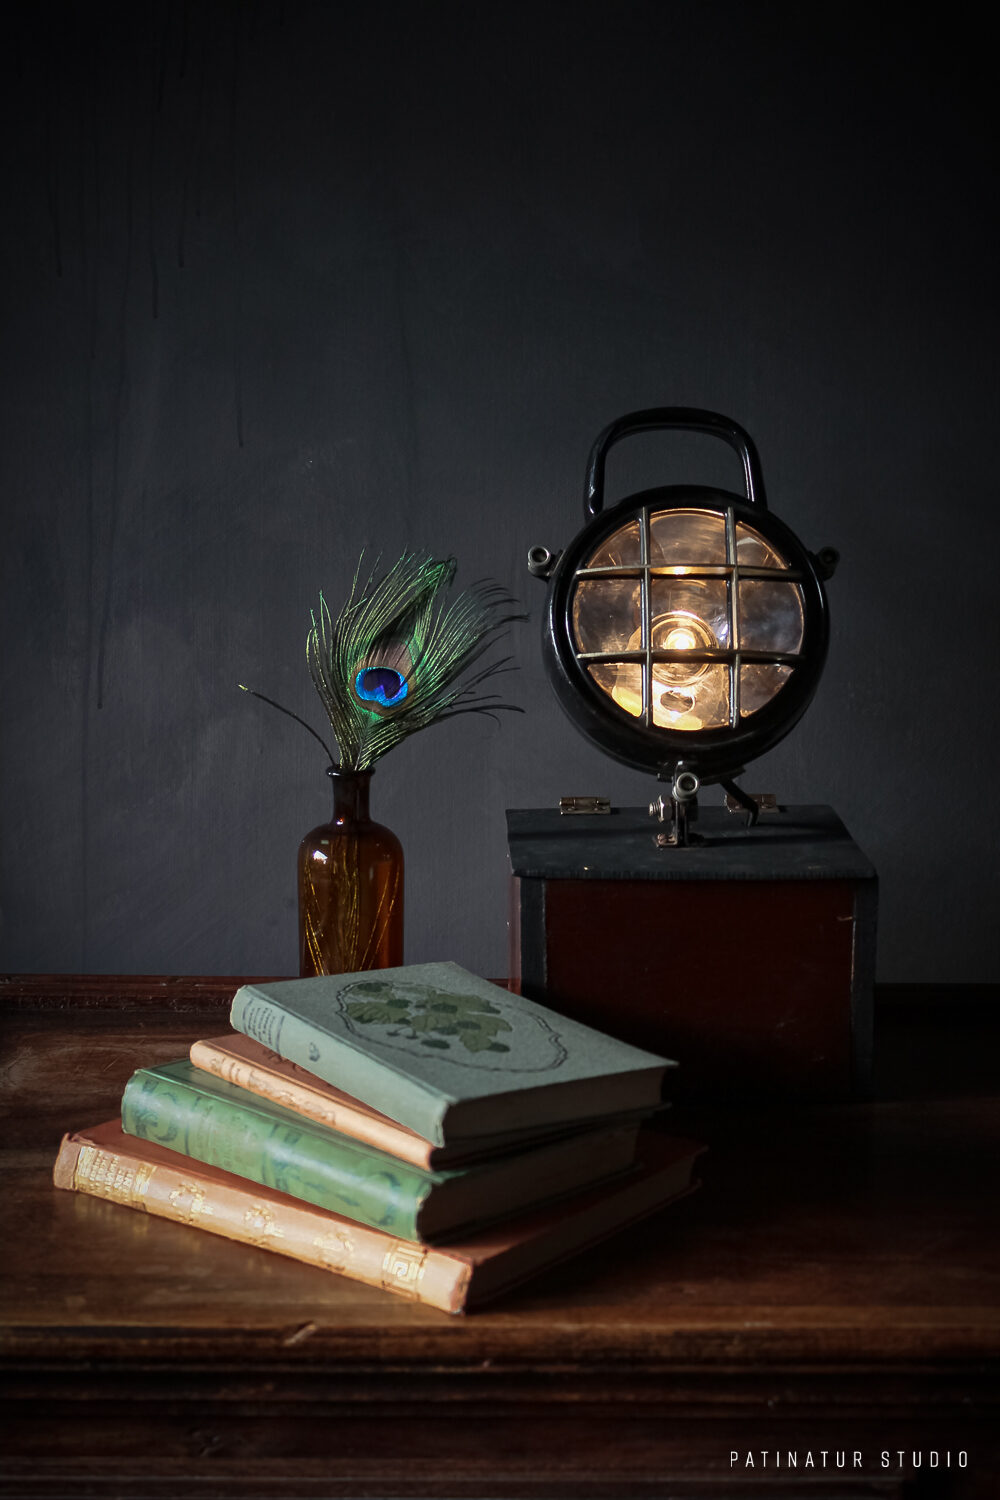 Photo Art | Dark and moody still life with vintage books, lamp and peacock feather